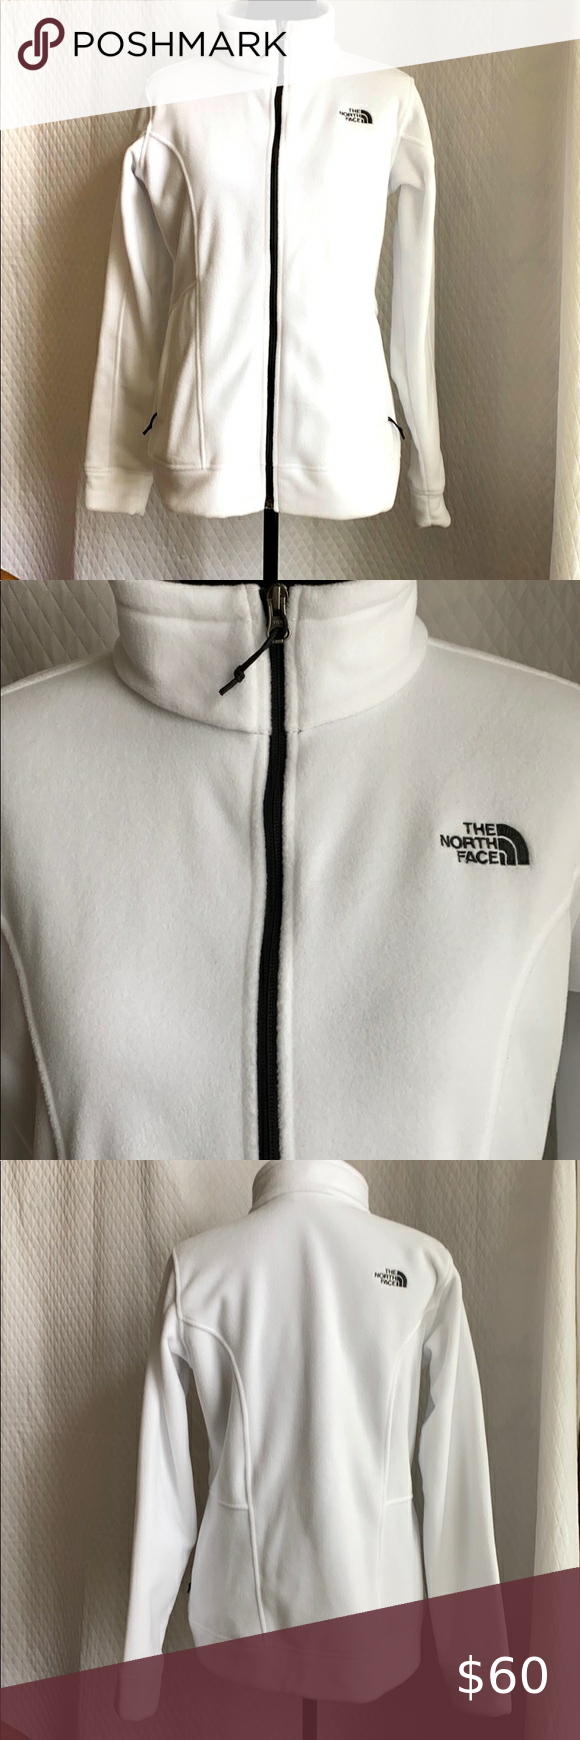 North Face White Jacket With Black Trim Sz L In 2020 White North Face Jacket White Jacket Black Trim [ png ]